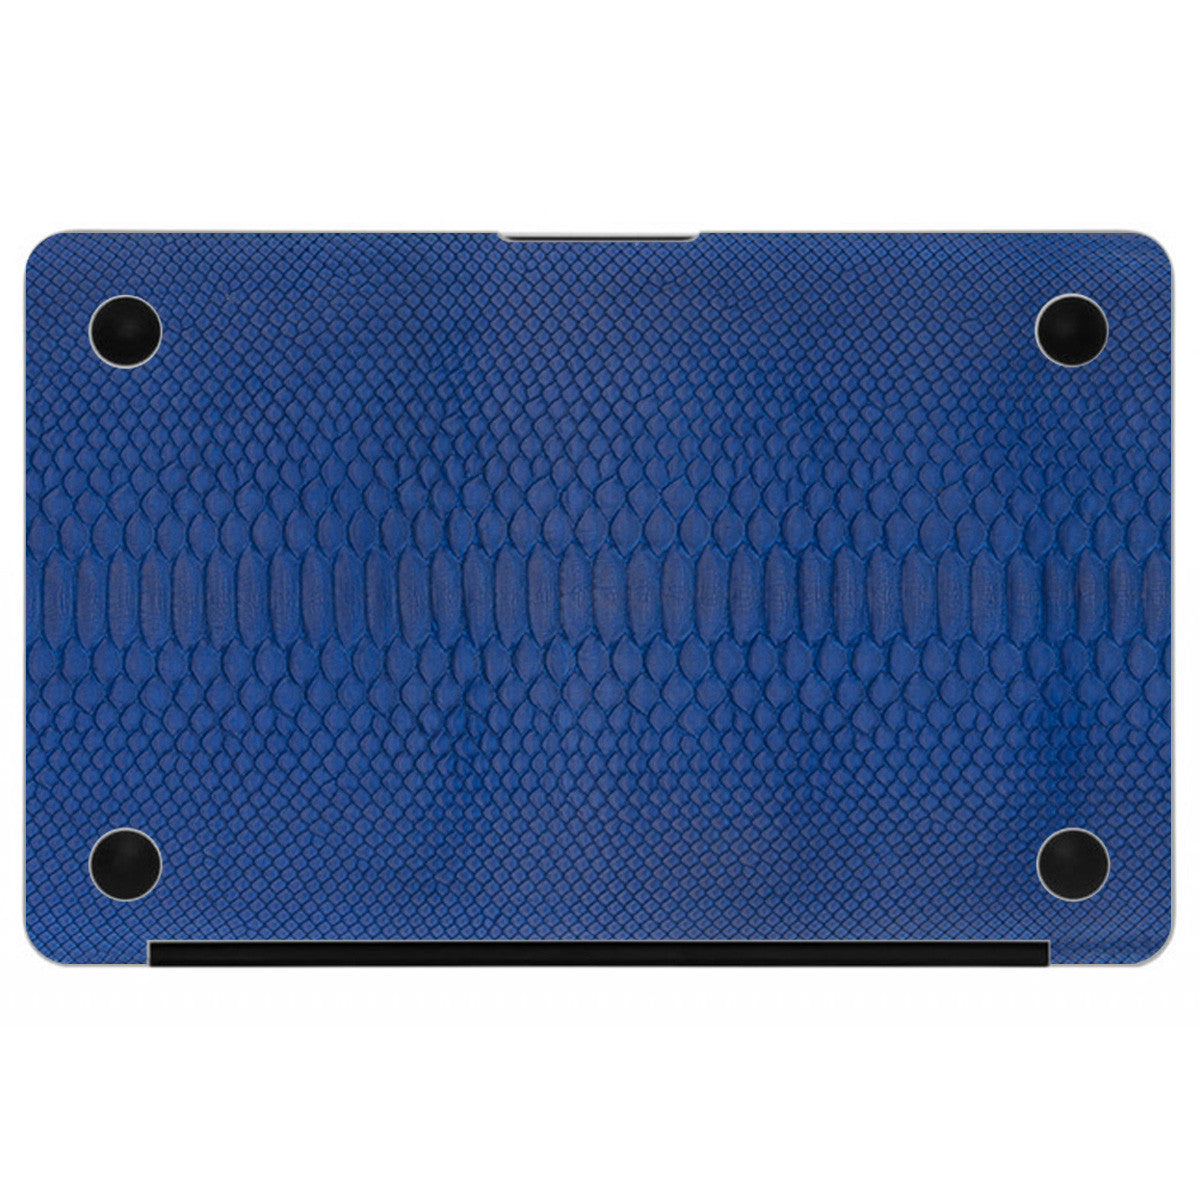 Cobalt Python MacBook Leather Bottom Cover